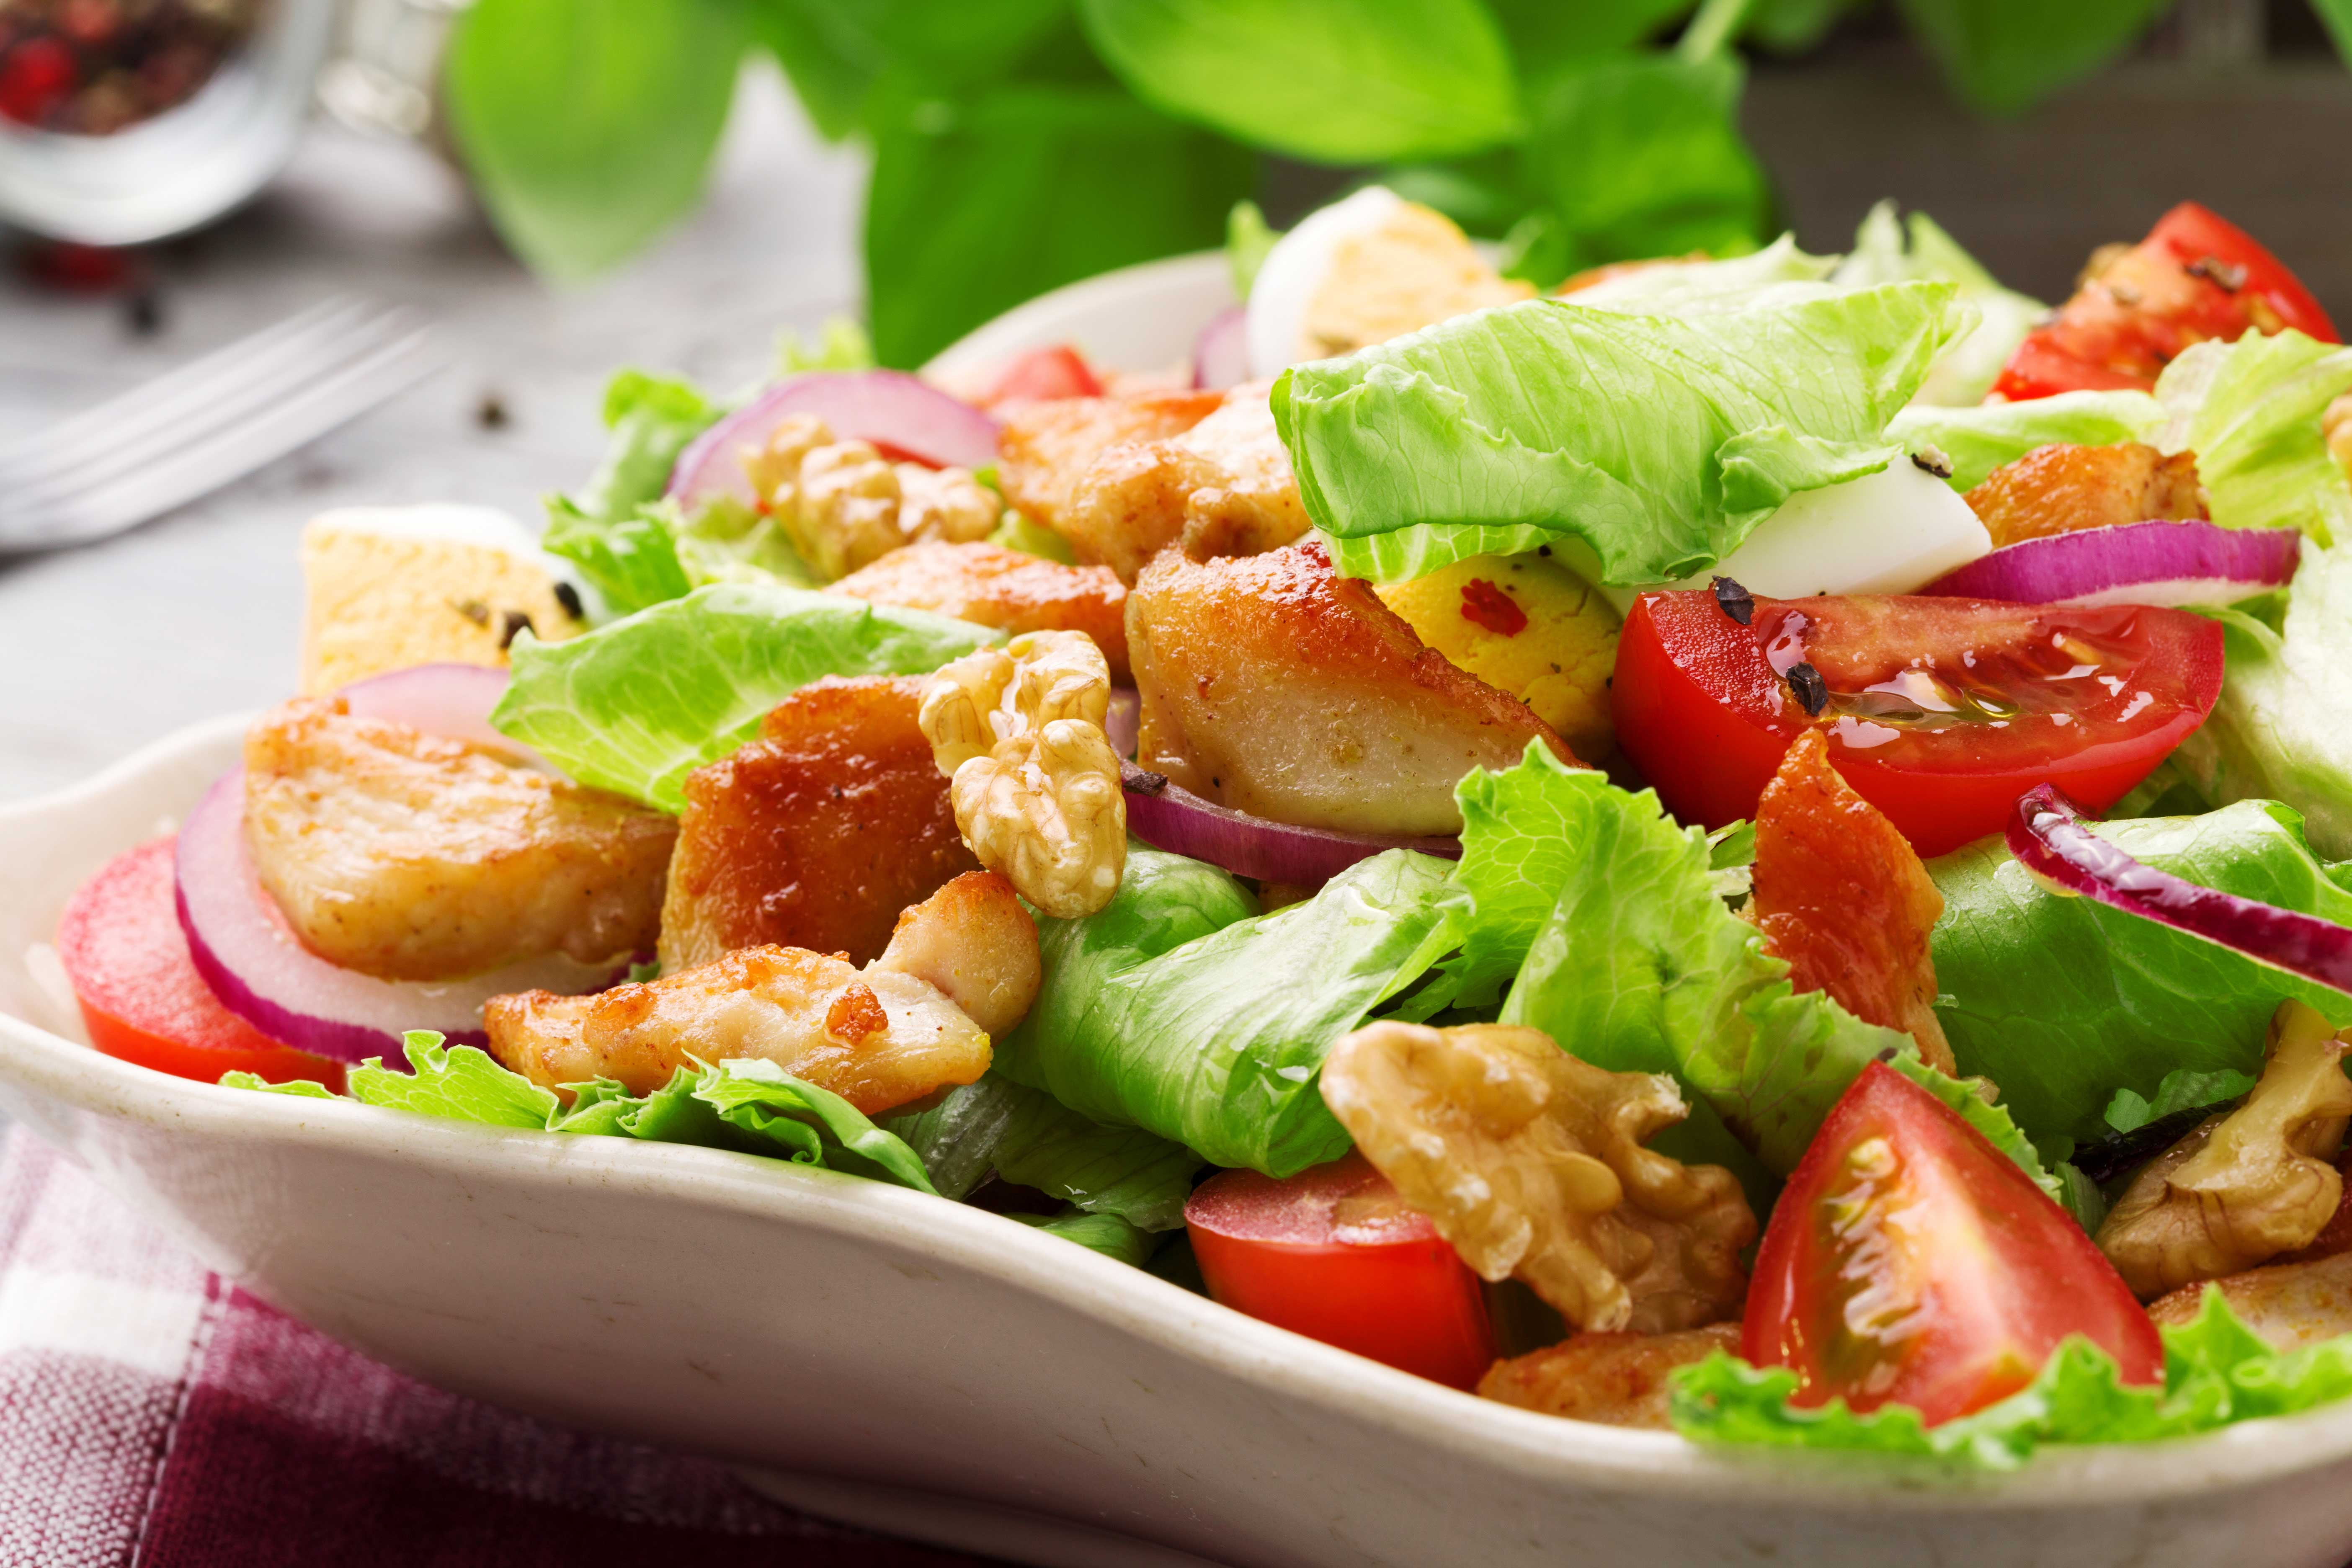 Delicious salad with chicken, nuts, egg and vegetables